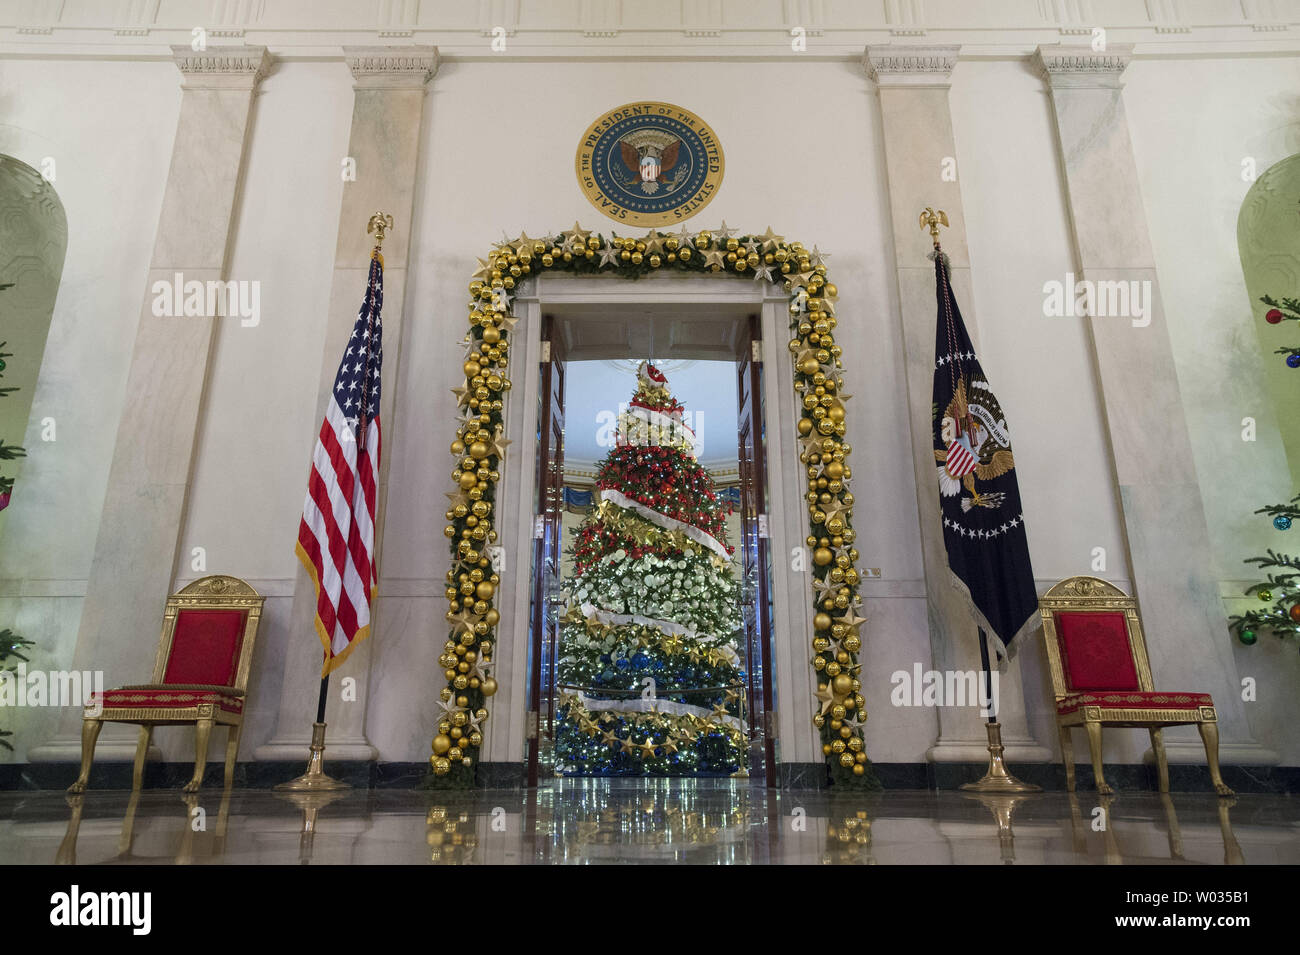 Decorations are seen in the Cross Hall during a holiday tour at the White House in Washington, D.C. on December 2, 2015. This year's team is 'A Timeless Tradition, and reflects long-held traditions cherished across America and commemorates extradorinaiy moments that help shaped the county. Photo by Kevin Dietsch/UPI - Stock Image